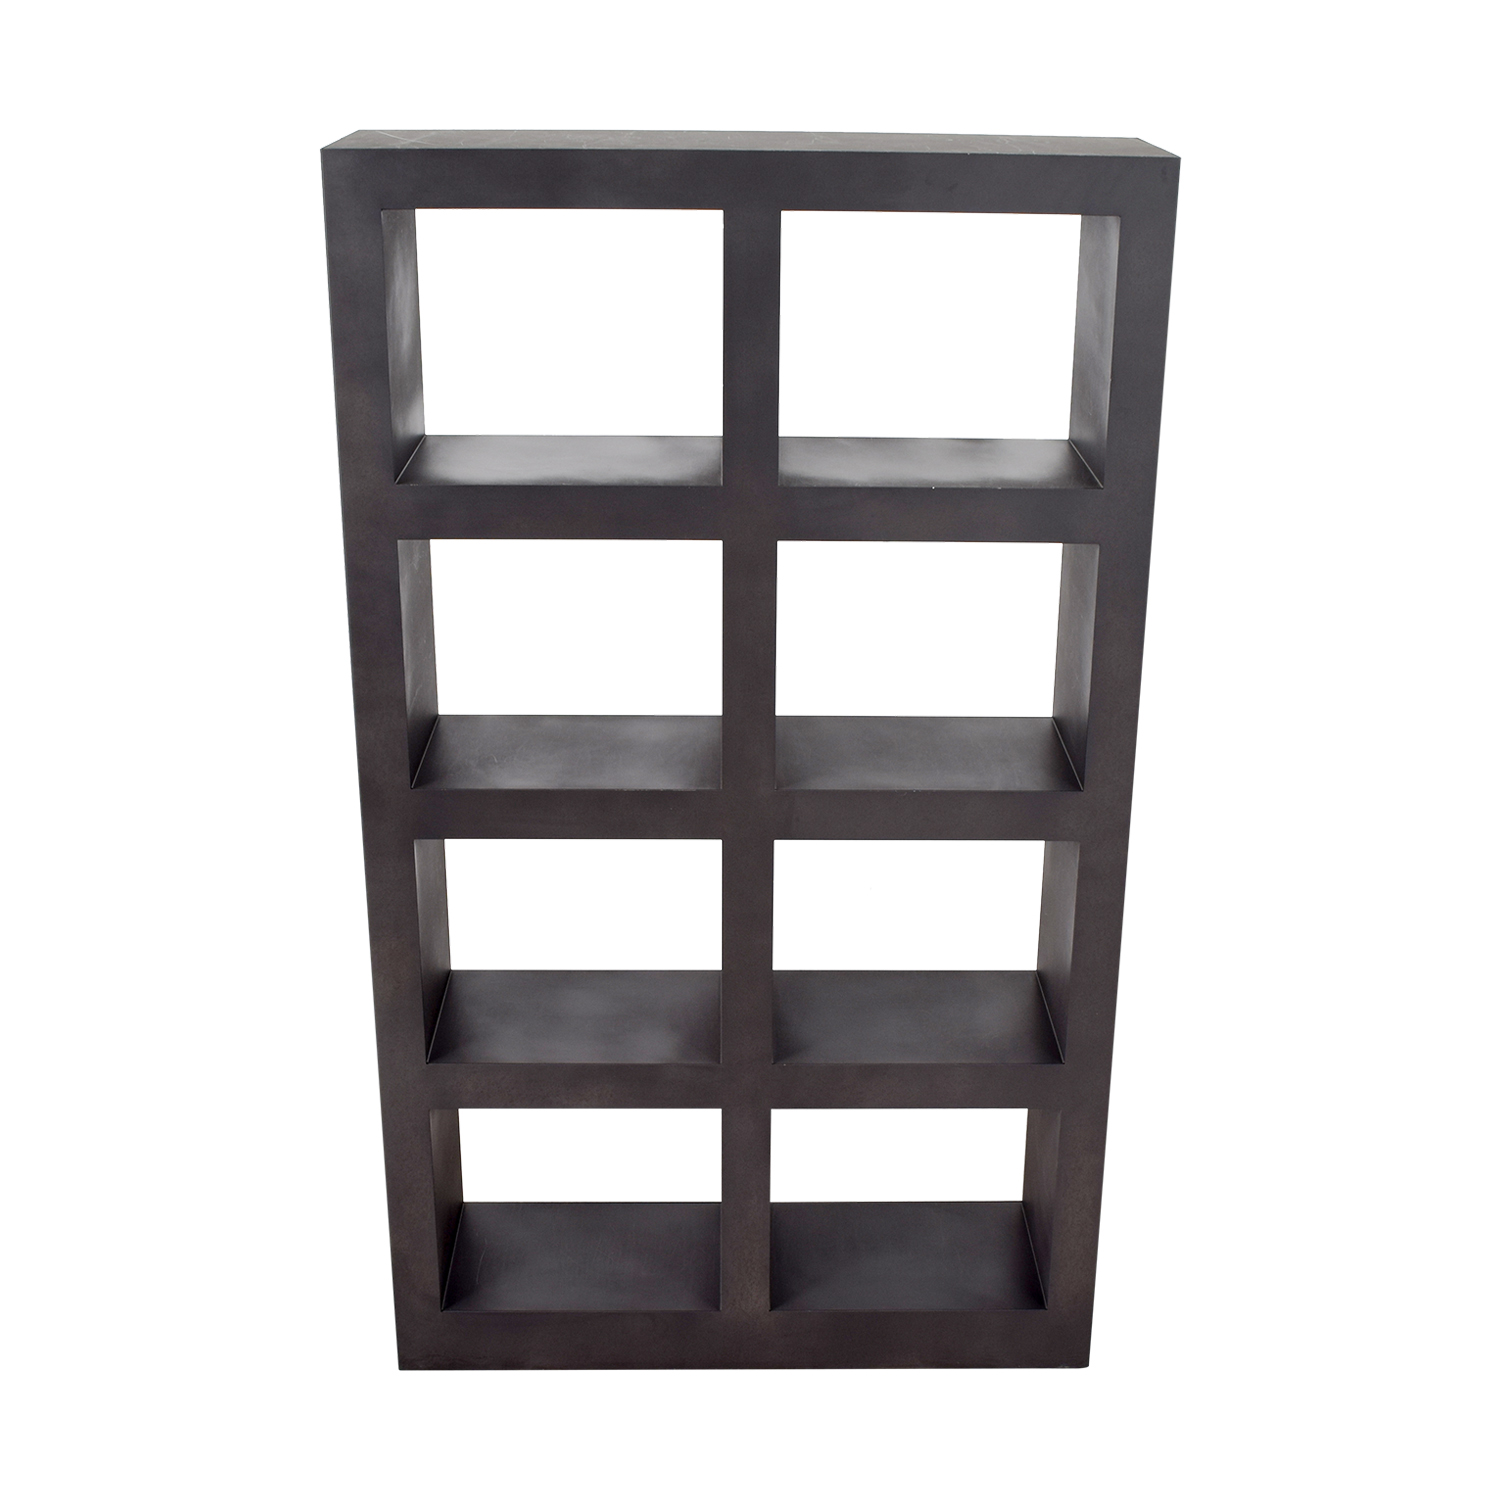 buy Crate & Barrel Shadow Box Bookcase Crate & Barrel Bookcases & Shelving